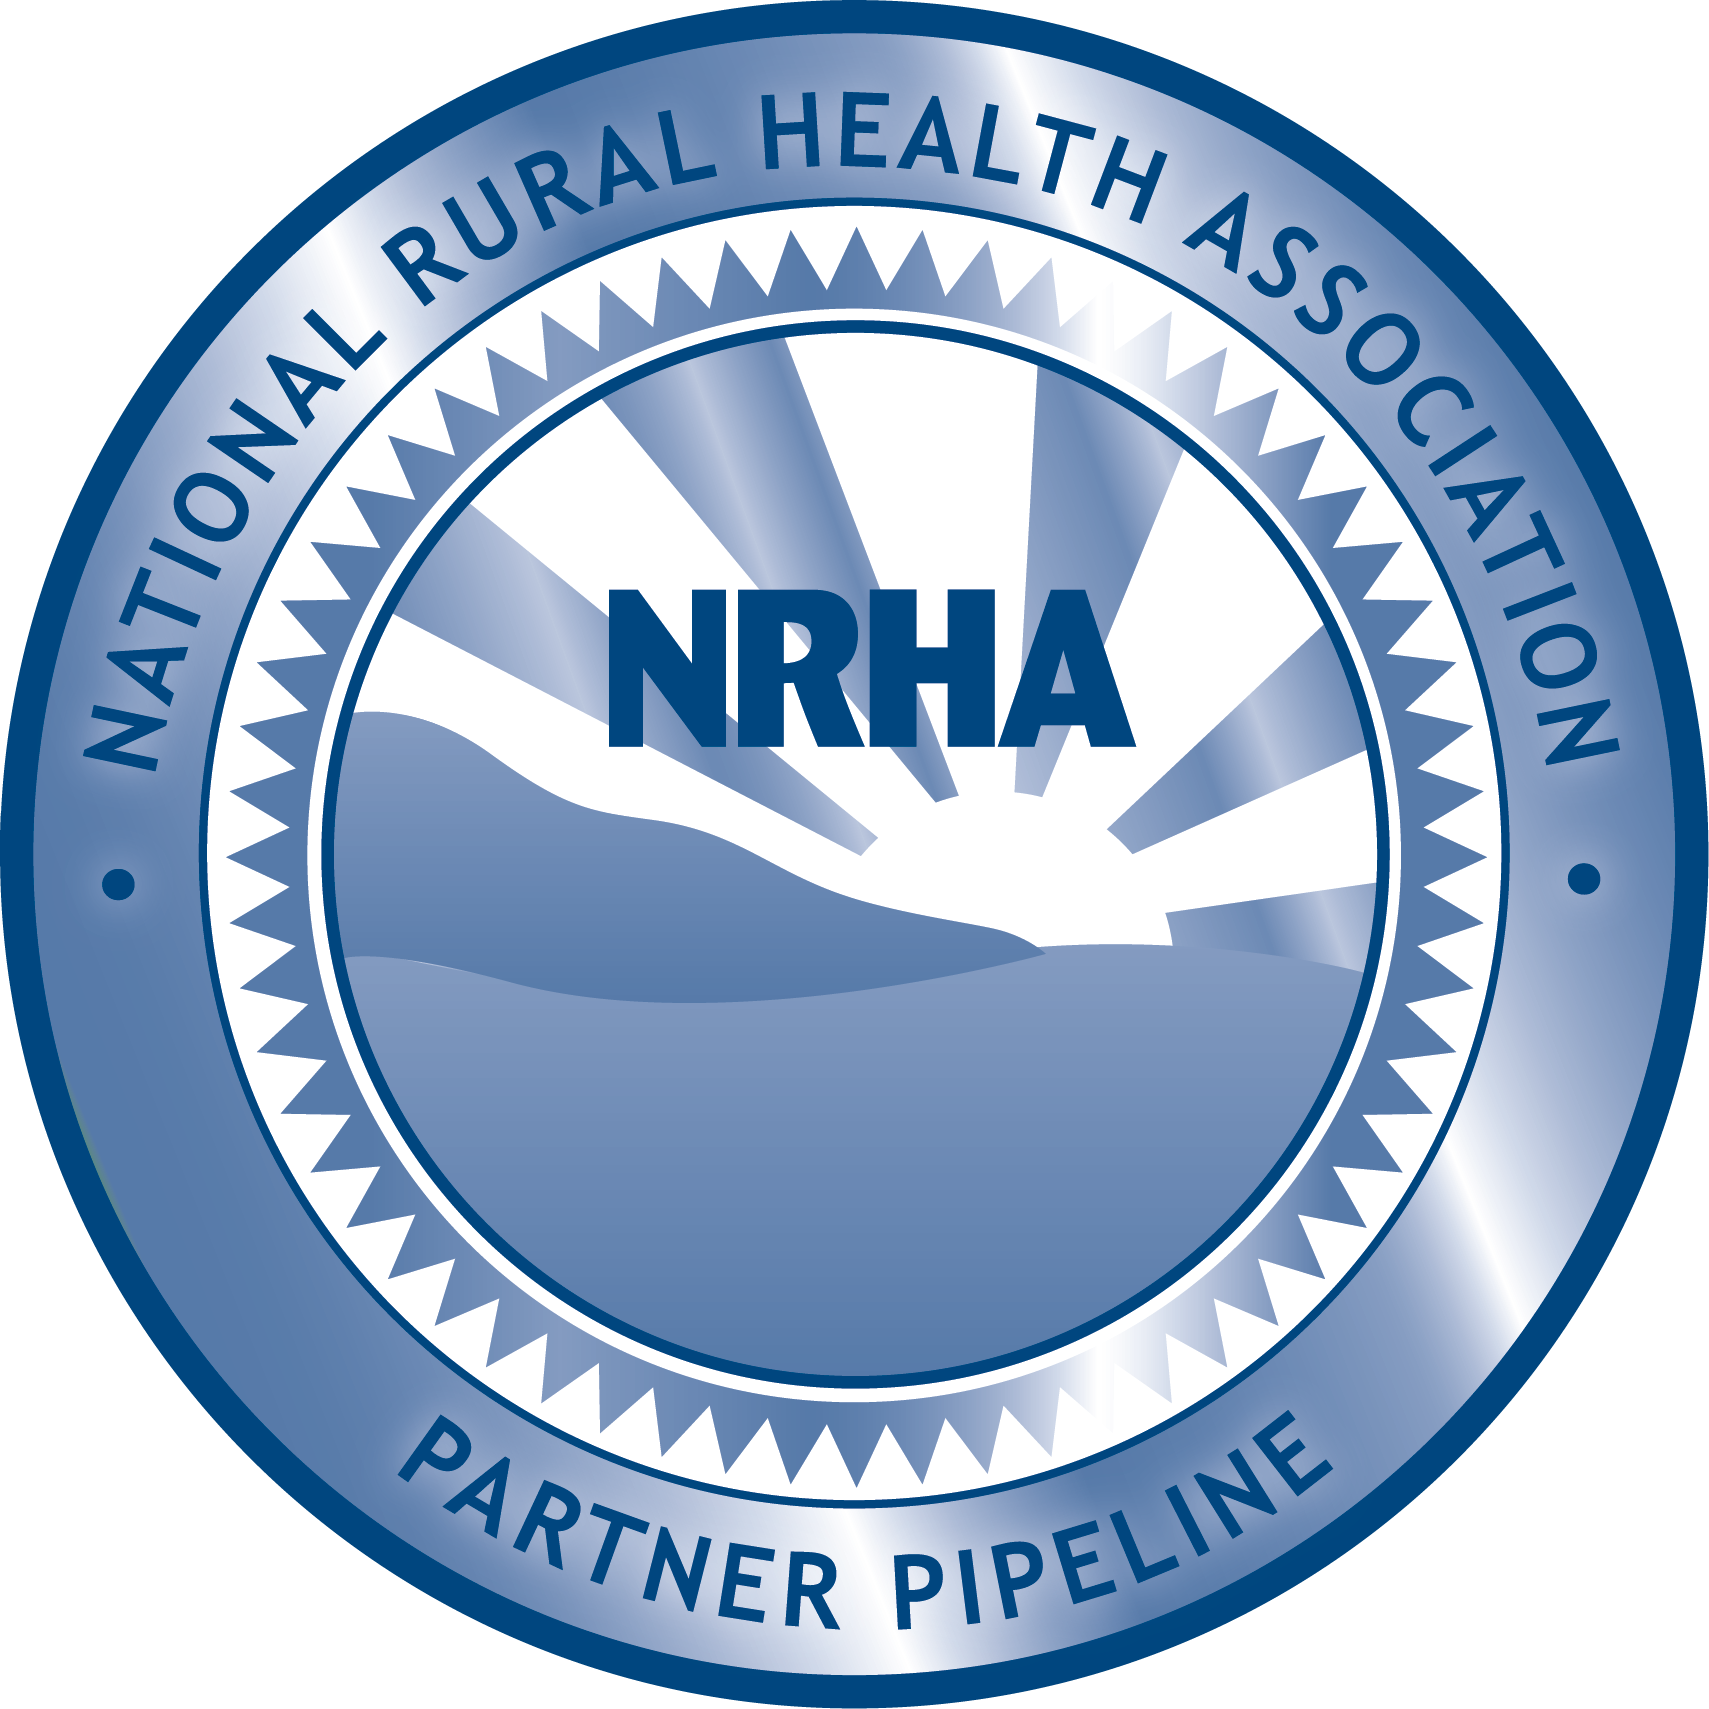 NRHA Partner Pipeline Seal